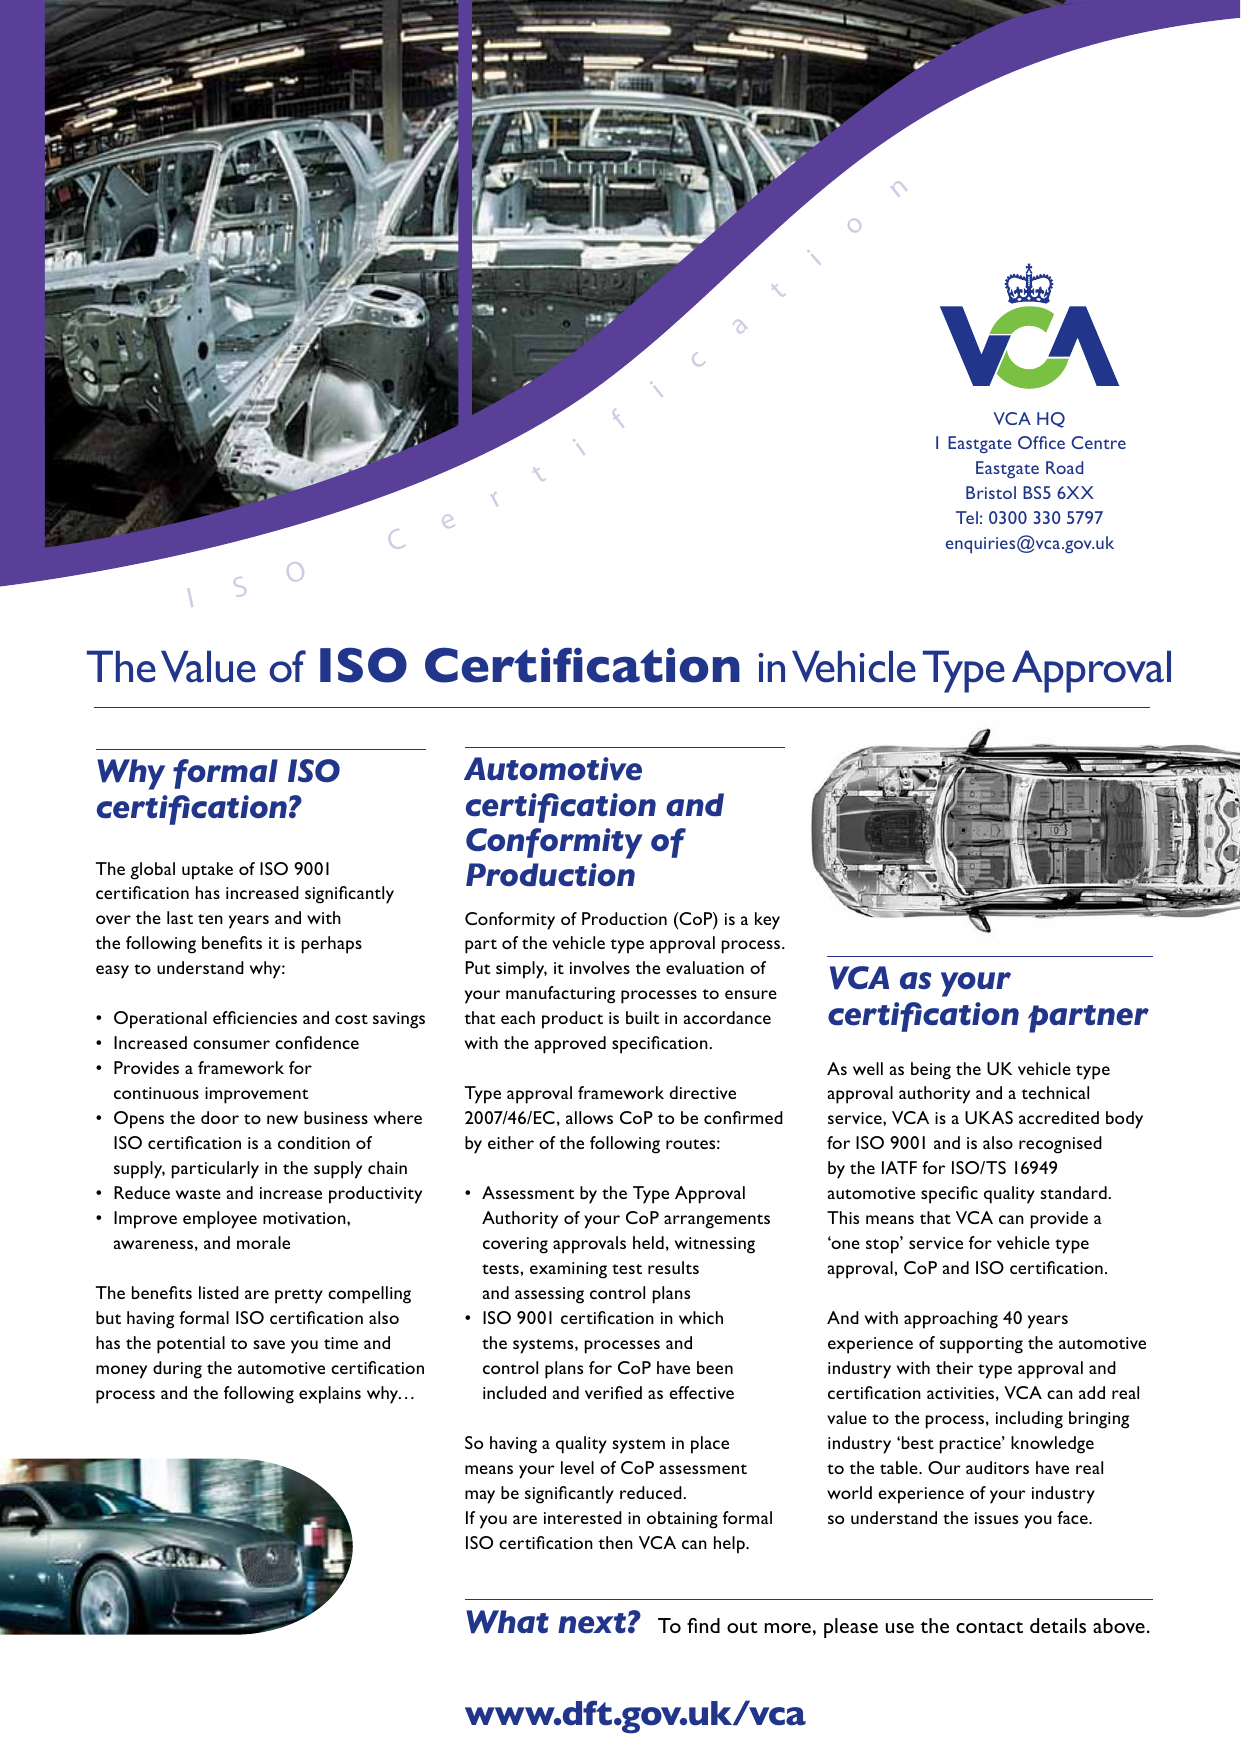 The Value of ISO Certification in Vehicle Type Approval